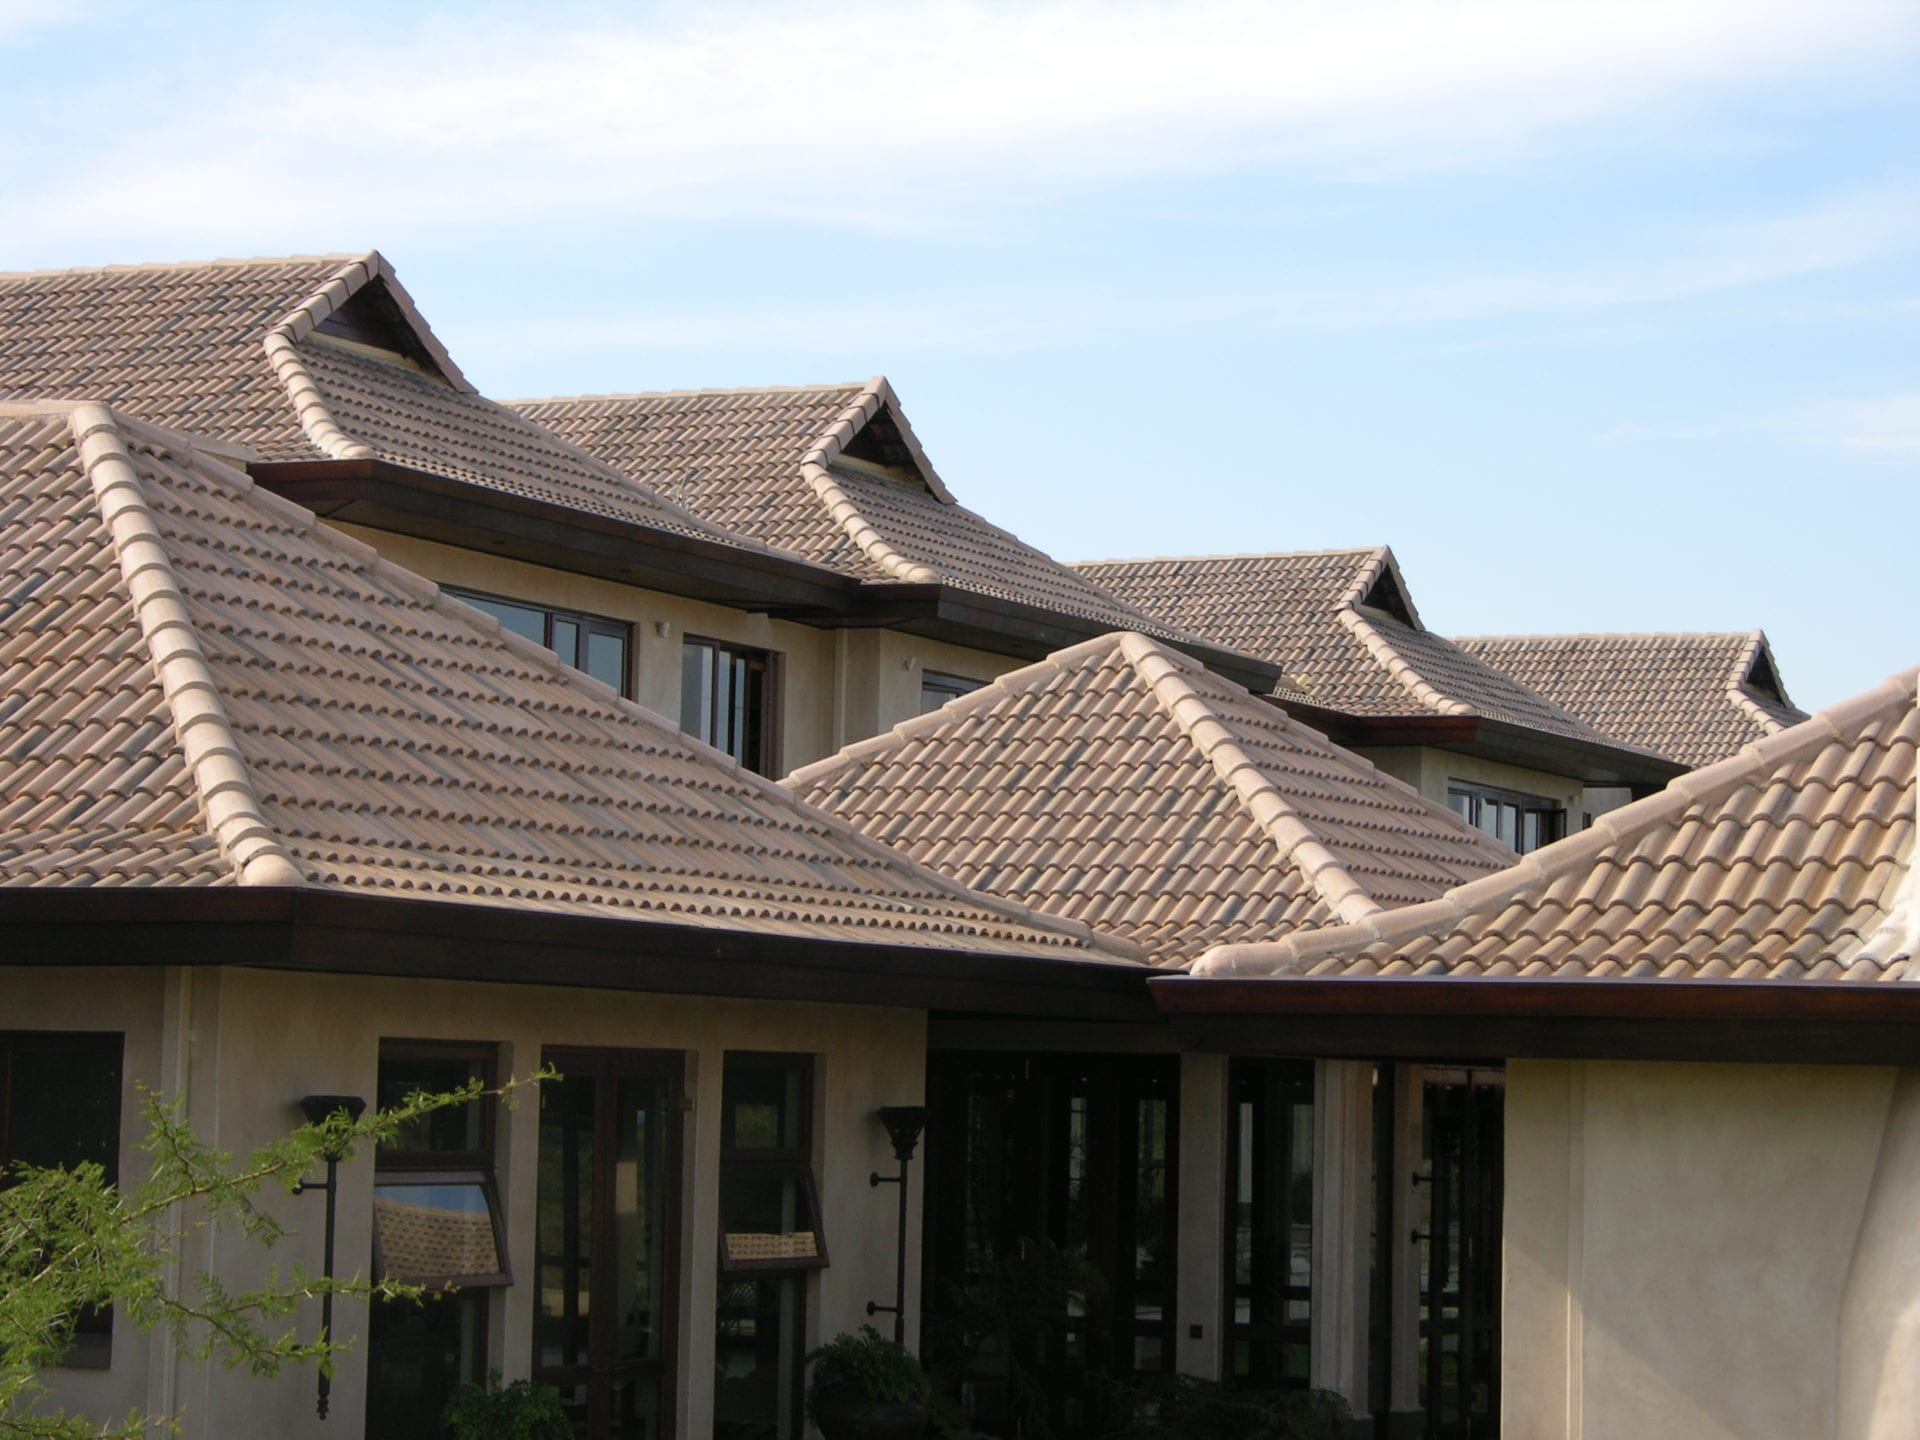 Marley Monarch Concrete Roof Tile - Marley Roofing